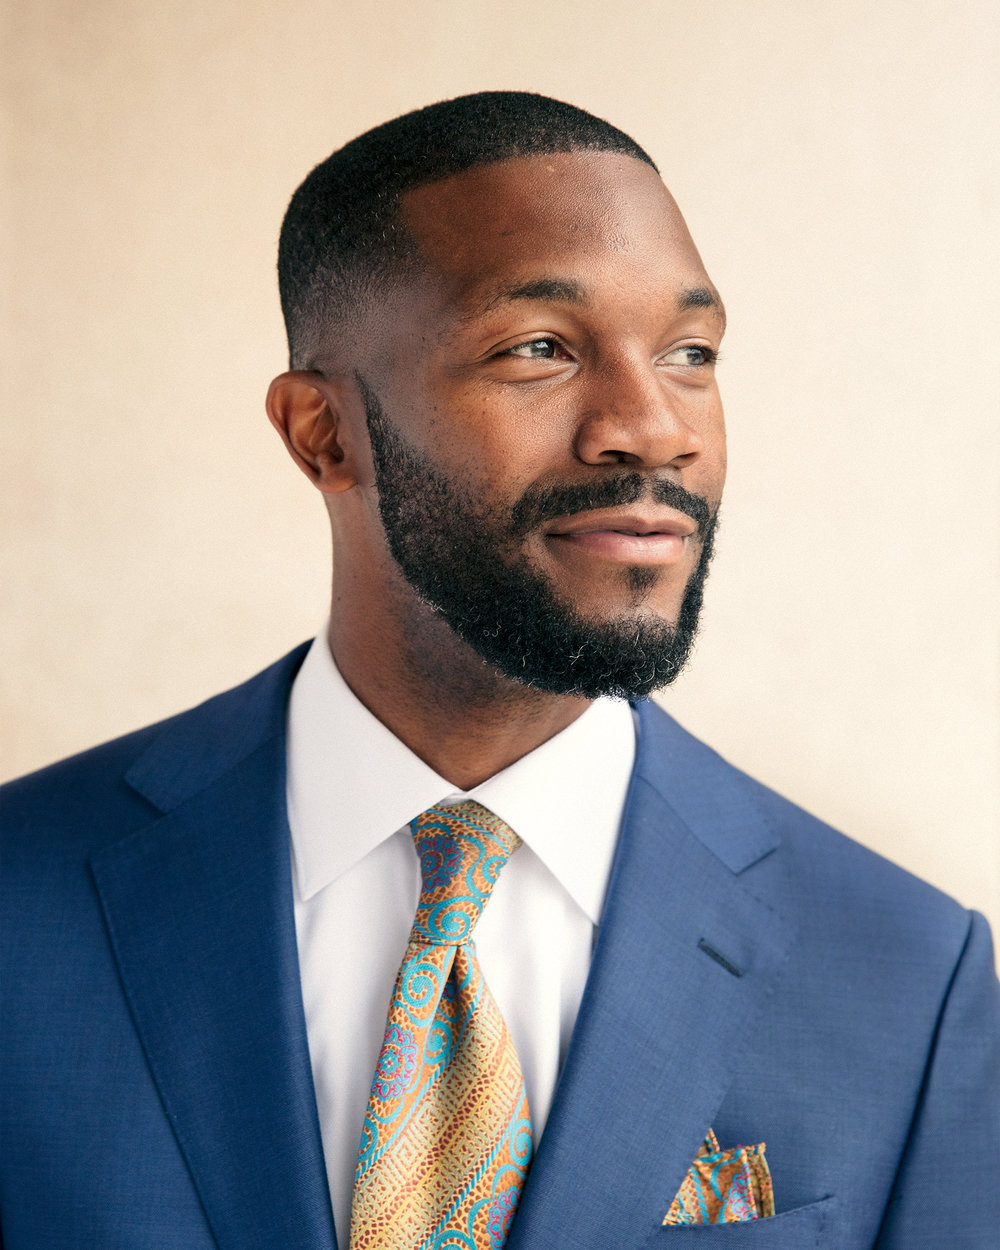 Randall Woodfin, Mayor of Birmingham